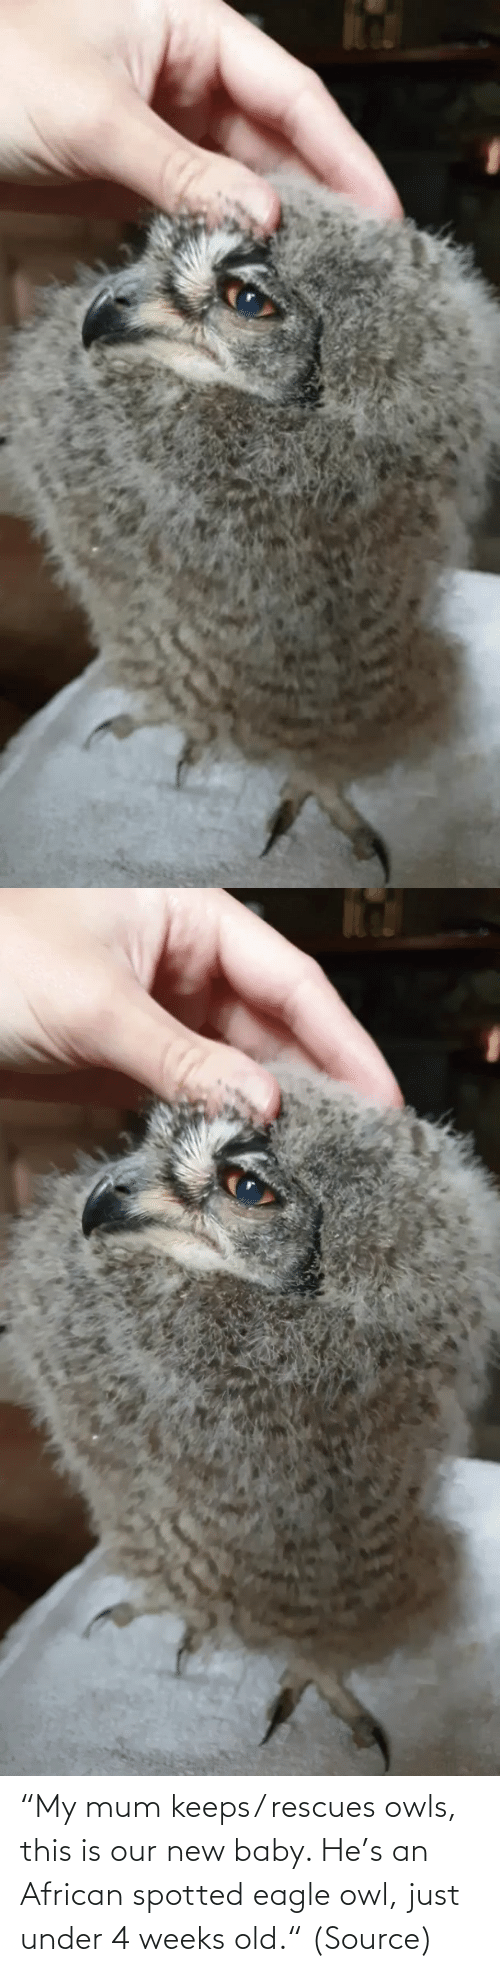 "new: ""My mum keeps/ rescues owls, this is our new baby. He's an African spotted eagle owl, just under 4 weeks old."" (Source)"